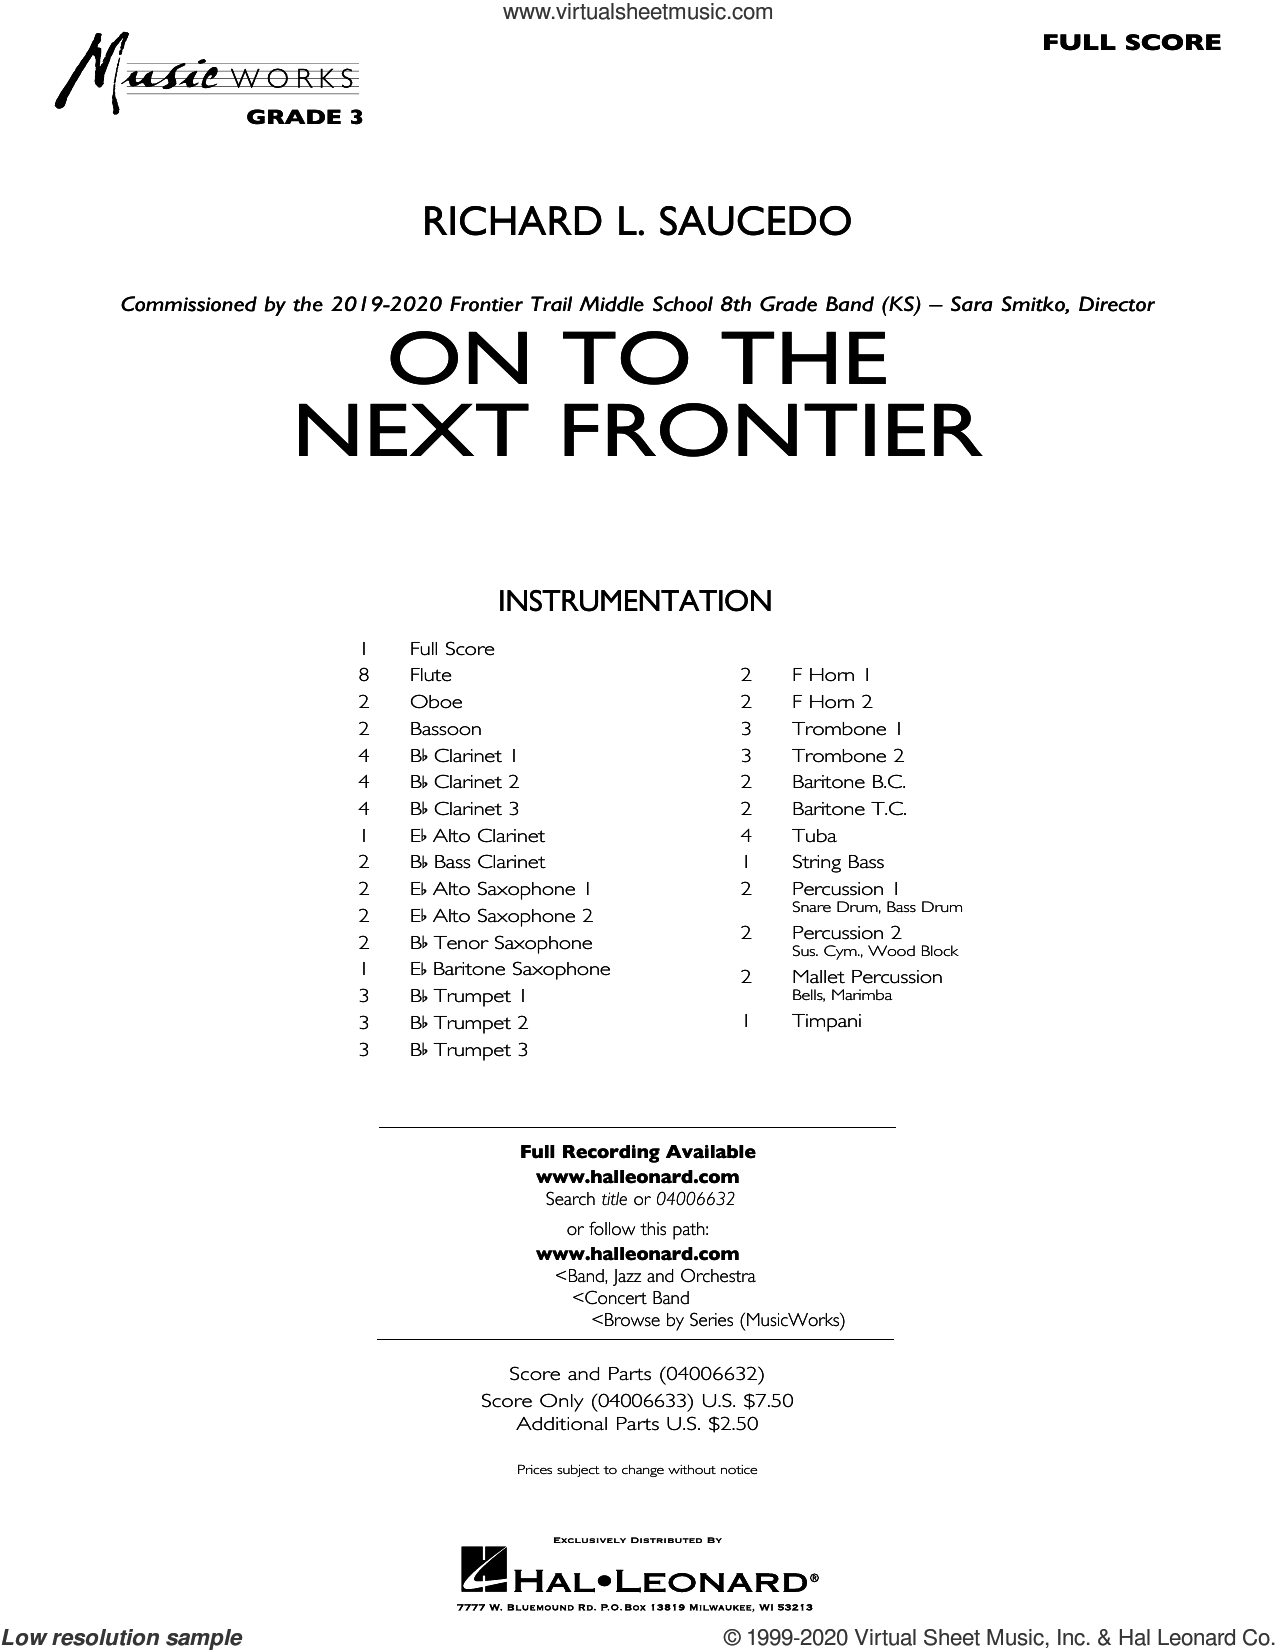 On to the Next Frontier (COMPLETE) sheet music for concert band by Richard L. Saucedo, intermediate skill level